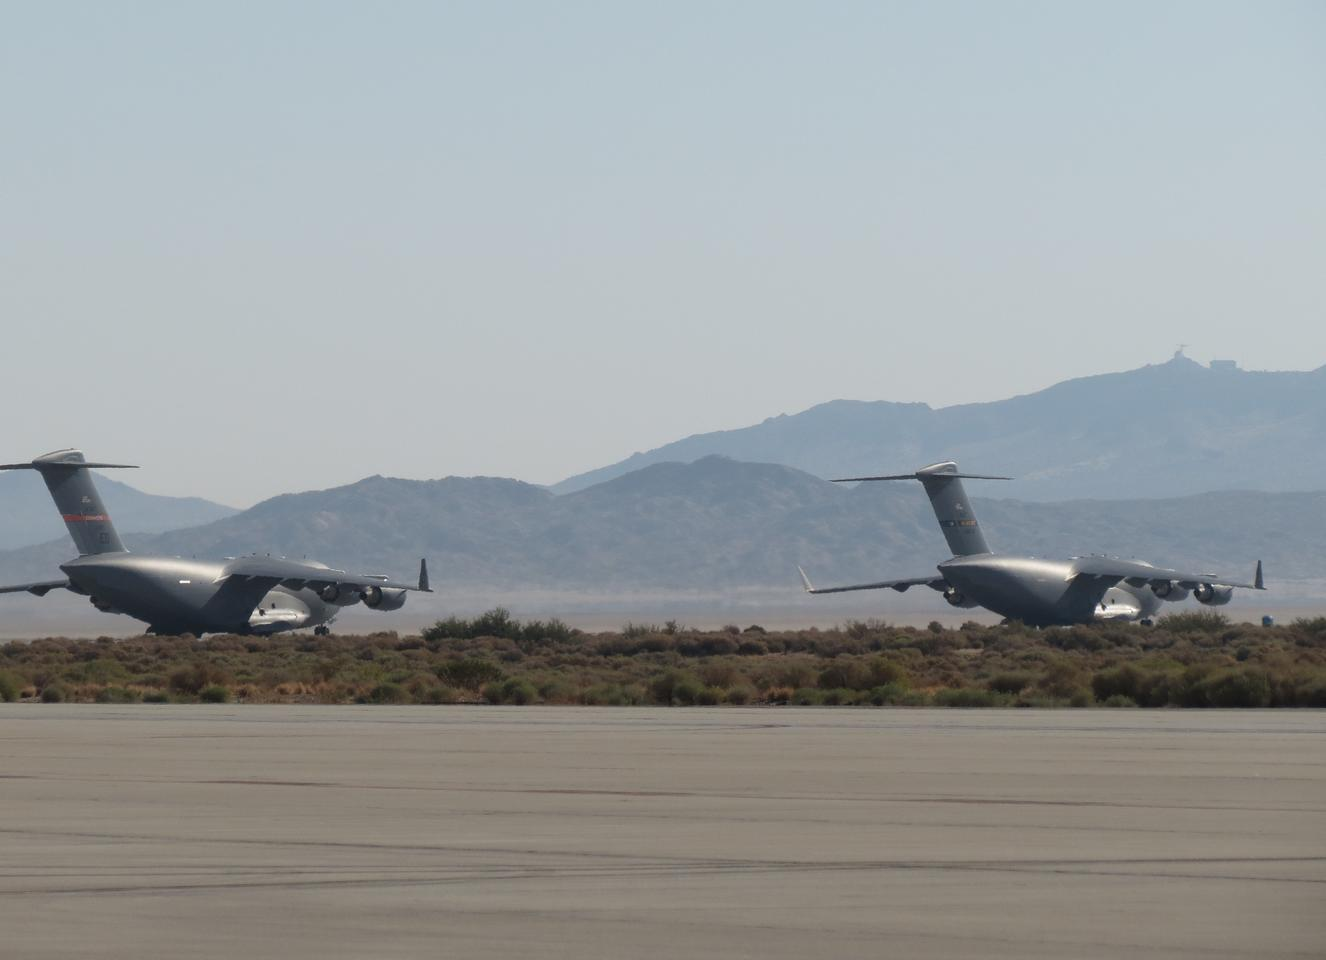 Tw0 C-17 cargo planes used in the $AVE vortex surfing tests (Image: US Air Force)